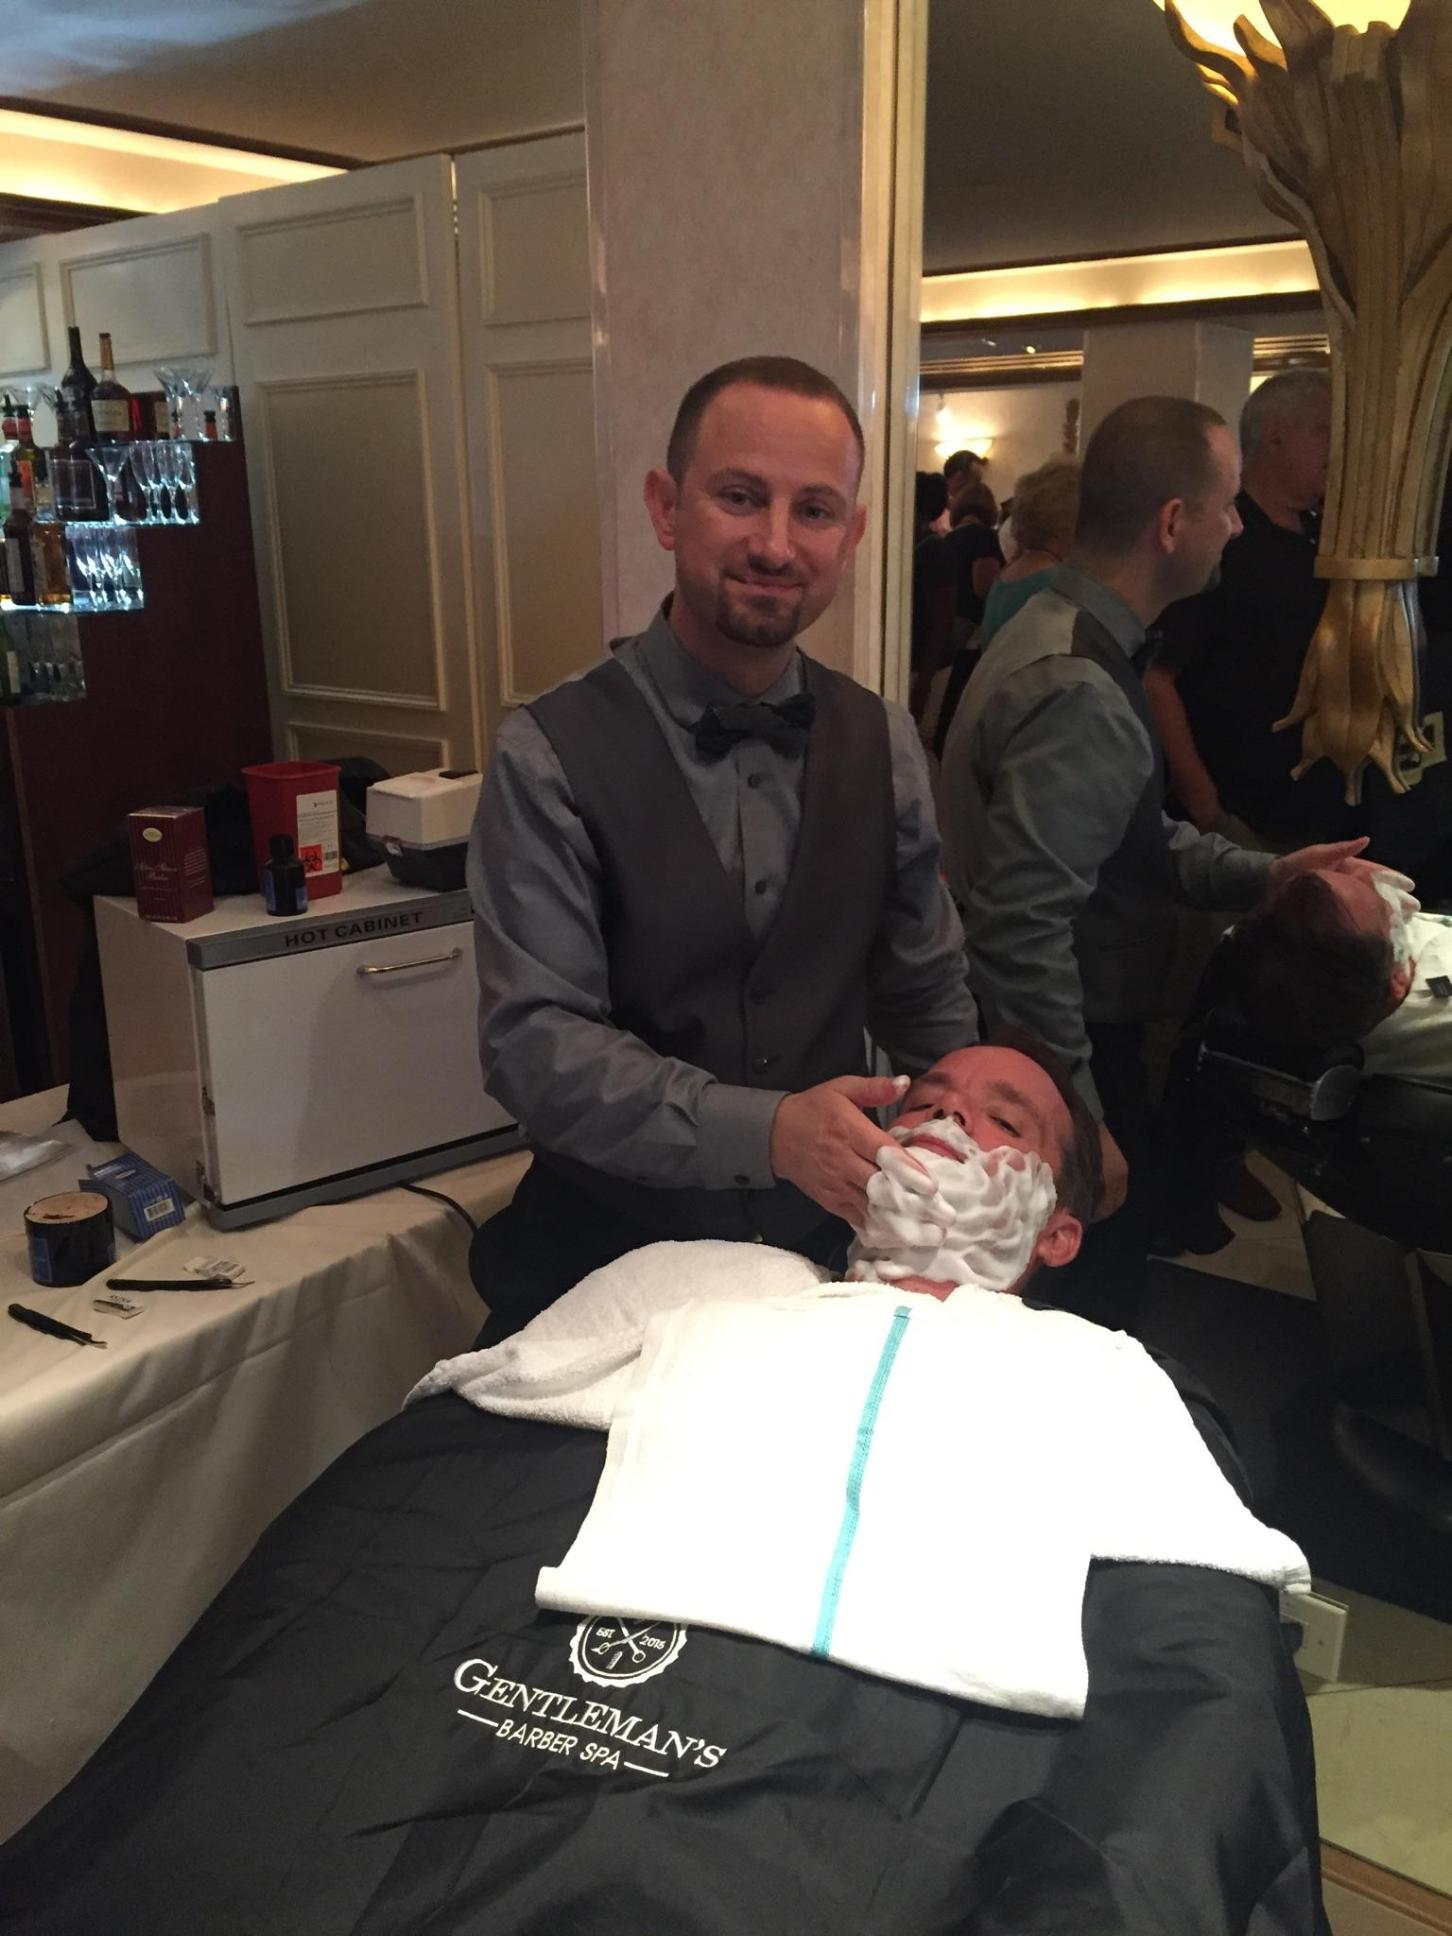 Founder of Gentleman's Barber Spa Performs the Hot Lather Shave at the Best of Westchester 2016 Awards Party